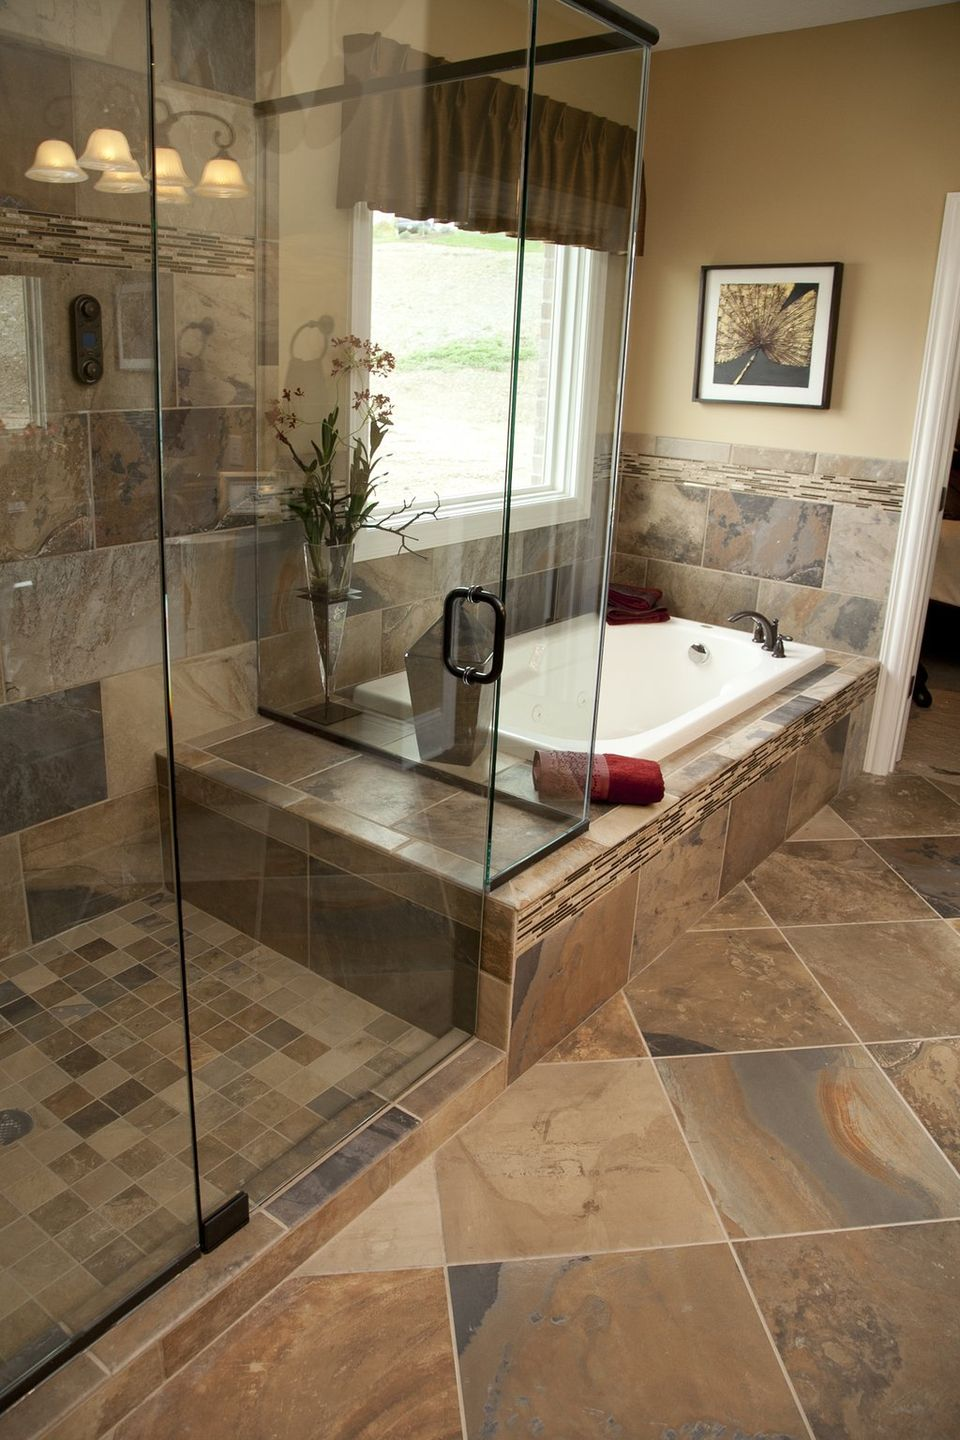 33 stunning pictures and ideas of natural stone bathroom for Tiles bathroom design